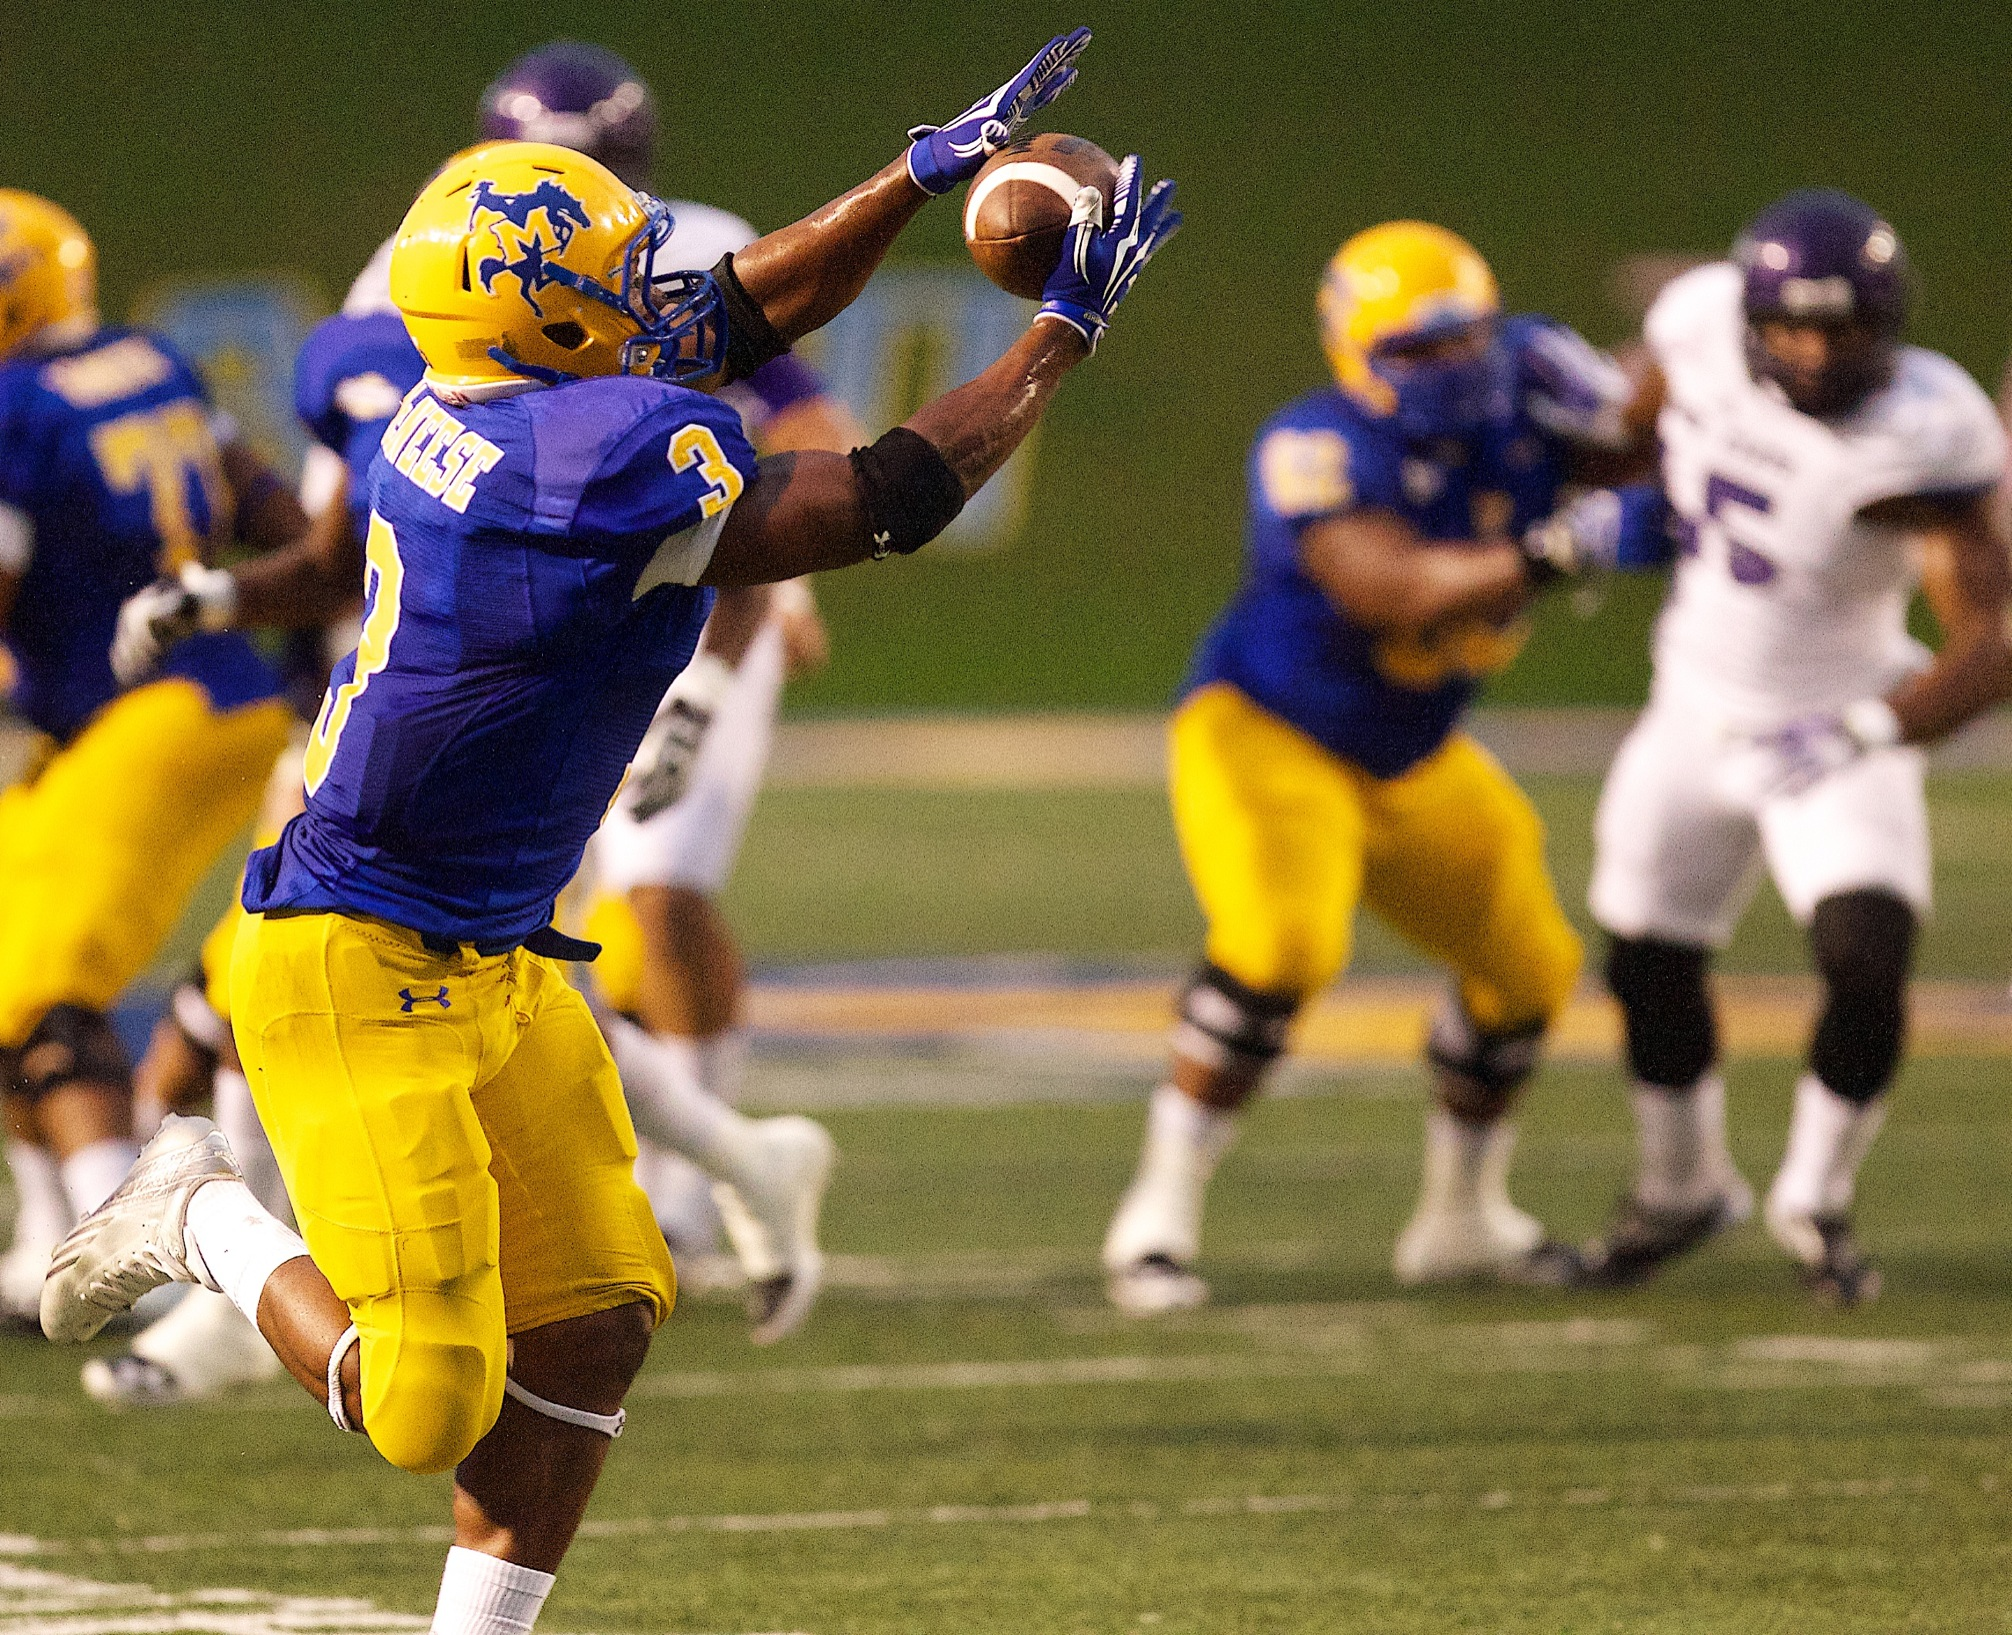 McNeese State vs. Weber State 2013